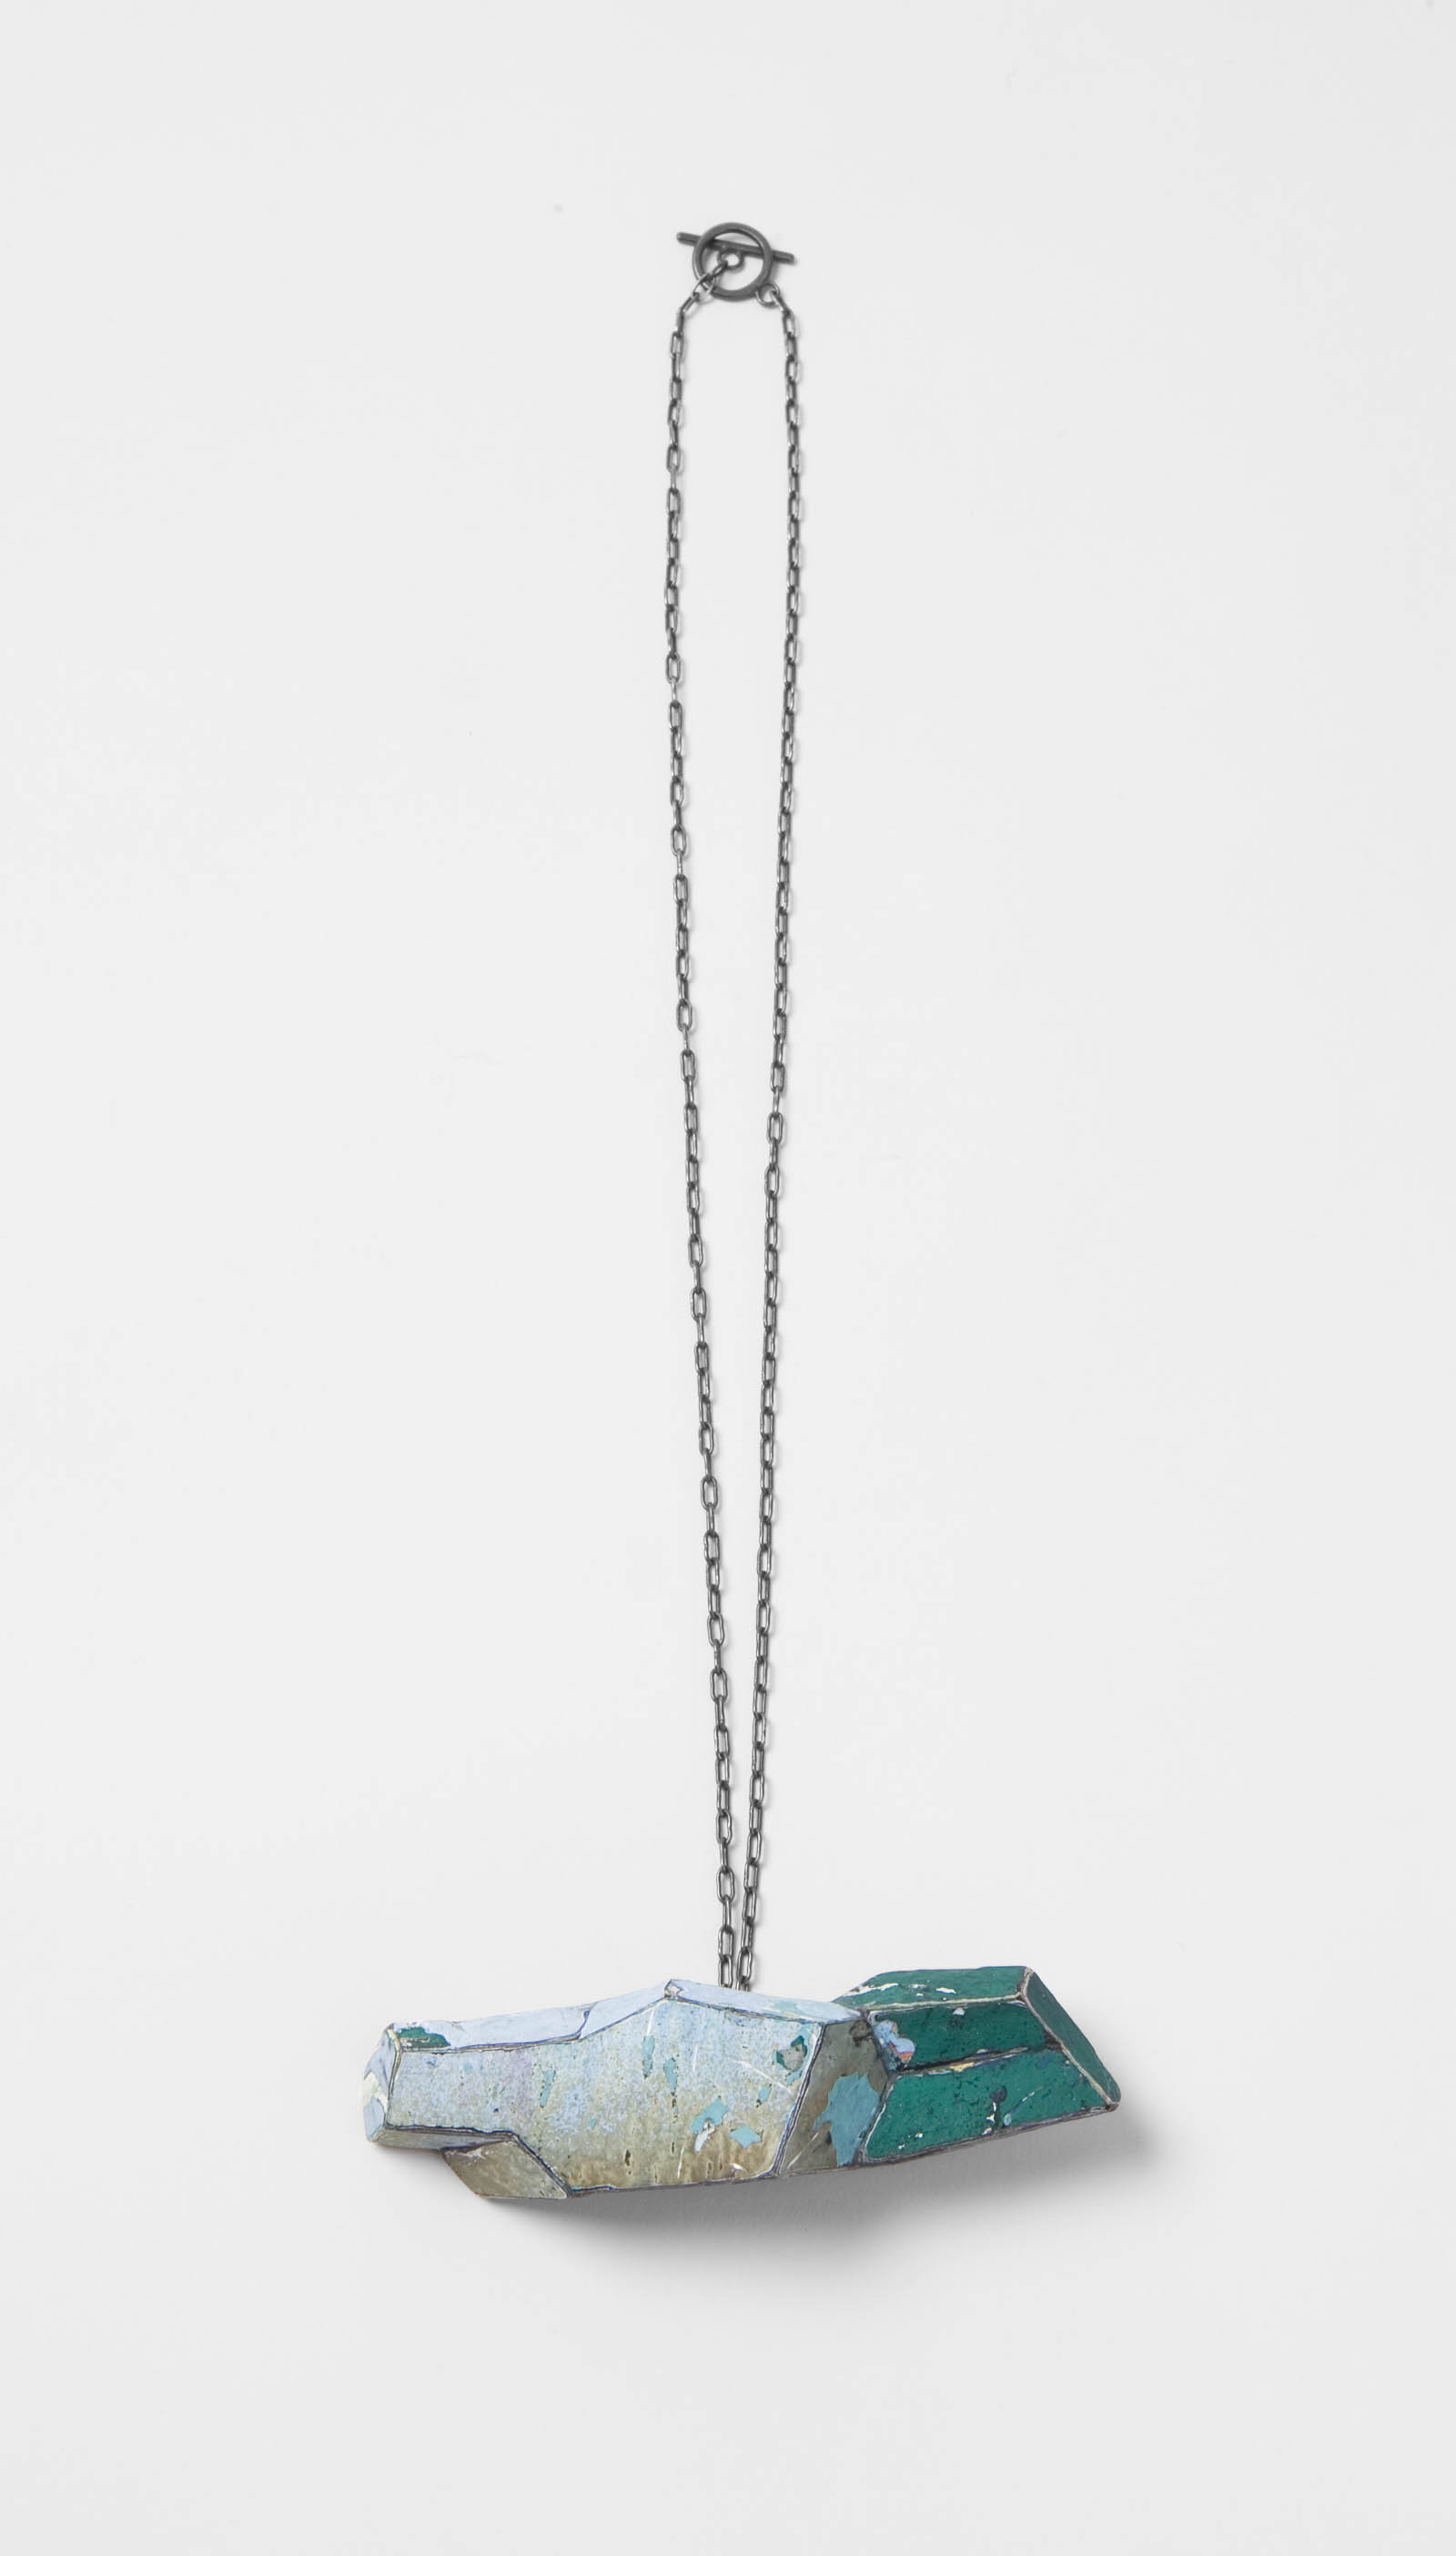 """Unfolded Blue"" I Necklace, 2013 I Graffiti, silver I Photo: Mirei Takeuchi"